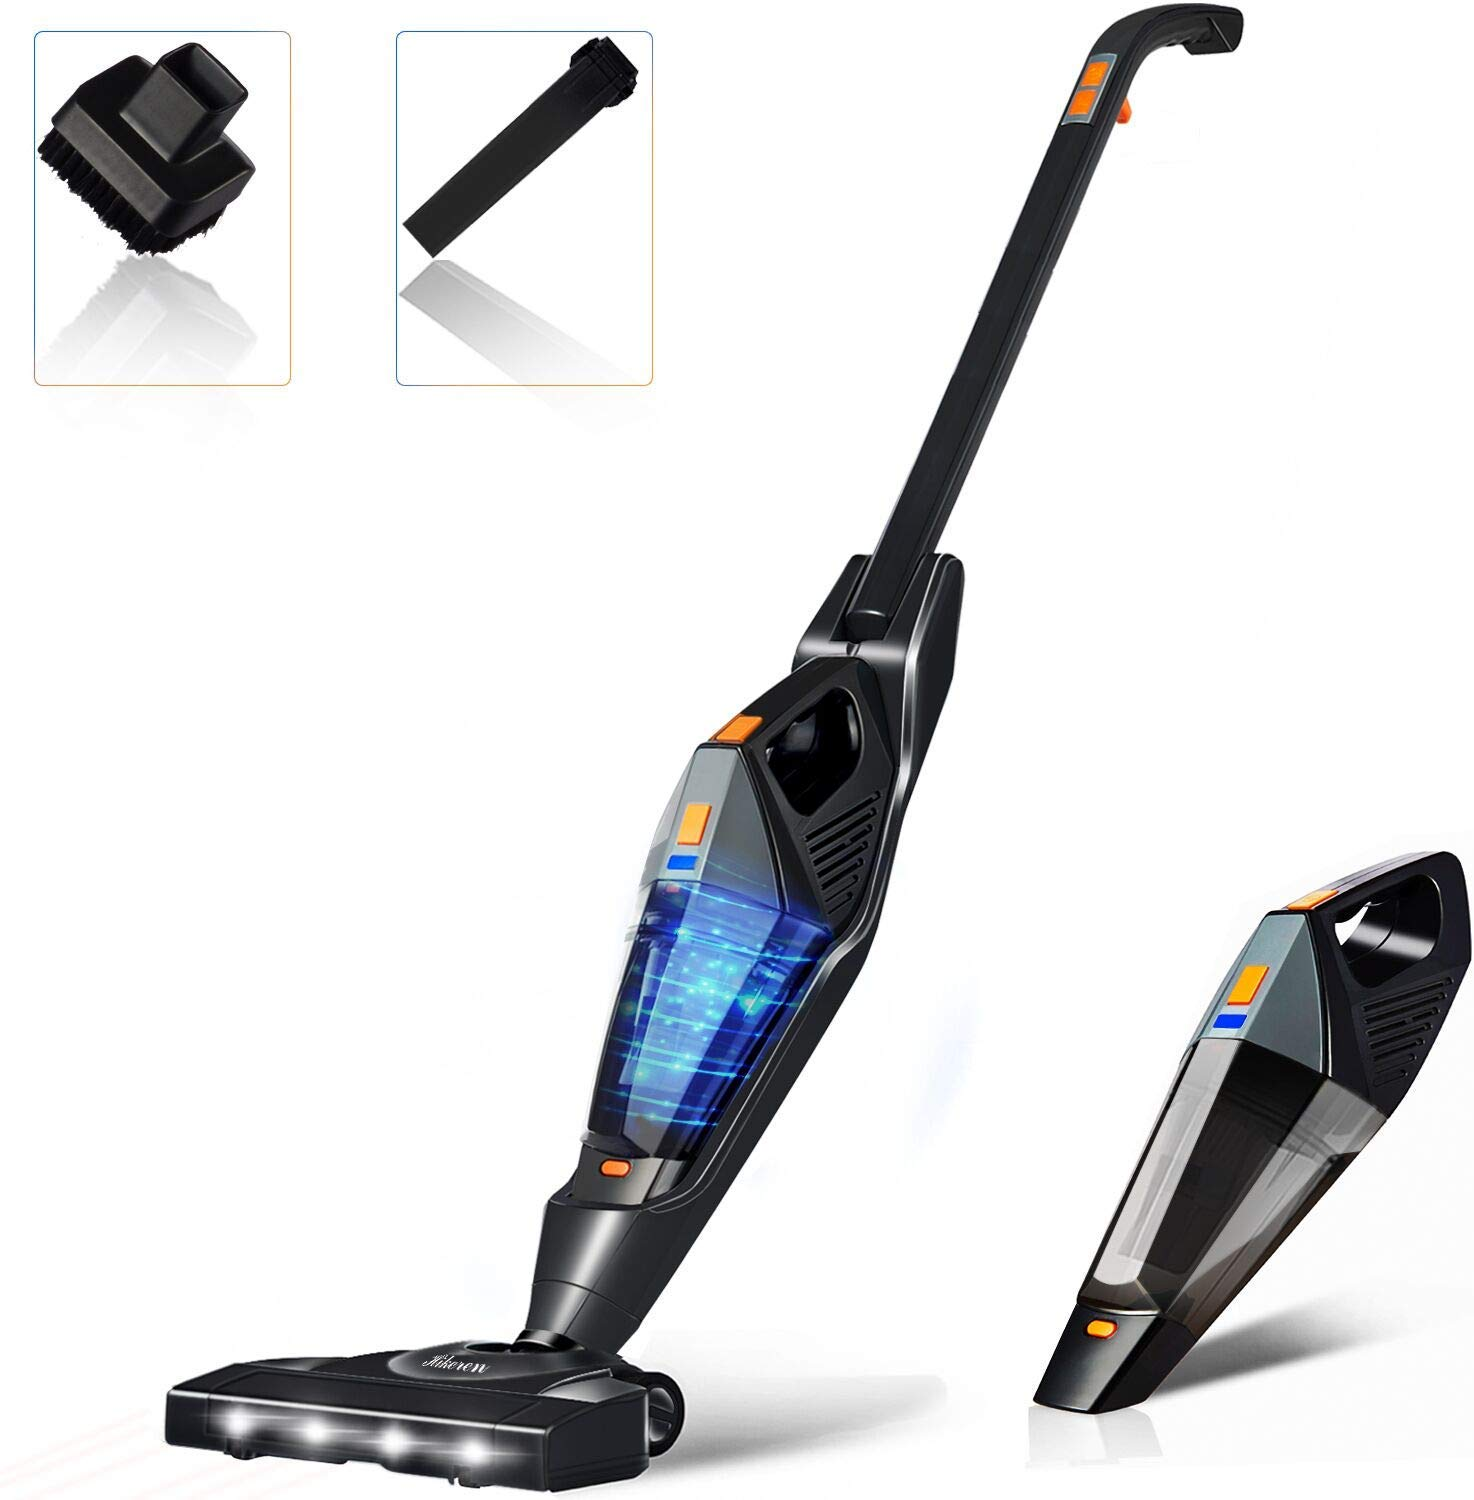 Cordless Vacuum, Hikeren Stick Vacuum Cleaner, 12KPa Lightweight 2 in 1 Stick Handheld Vacuum with Rechargeable Lithium Ion Battery and LED Brush for Floor Carpet Pet Hair, Black (Upgraded)